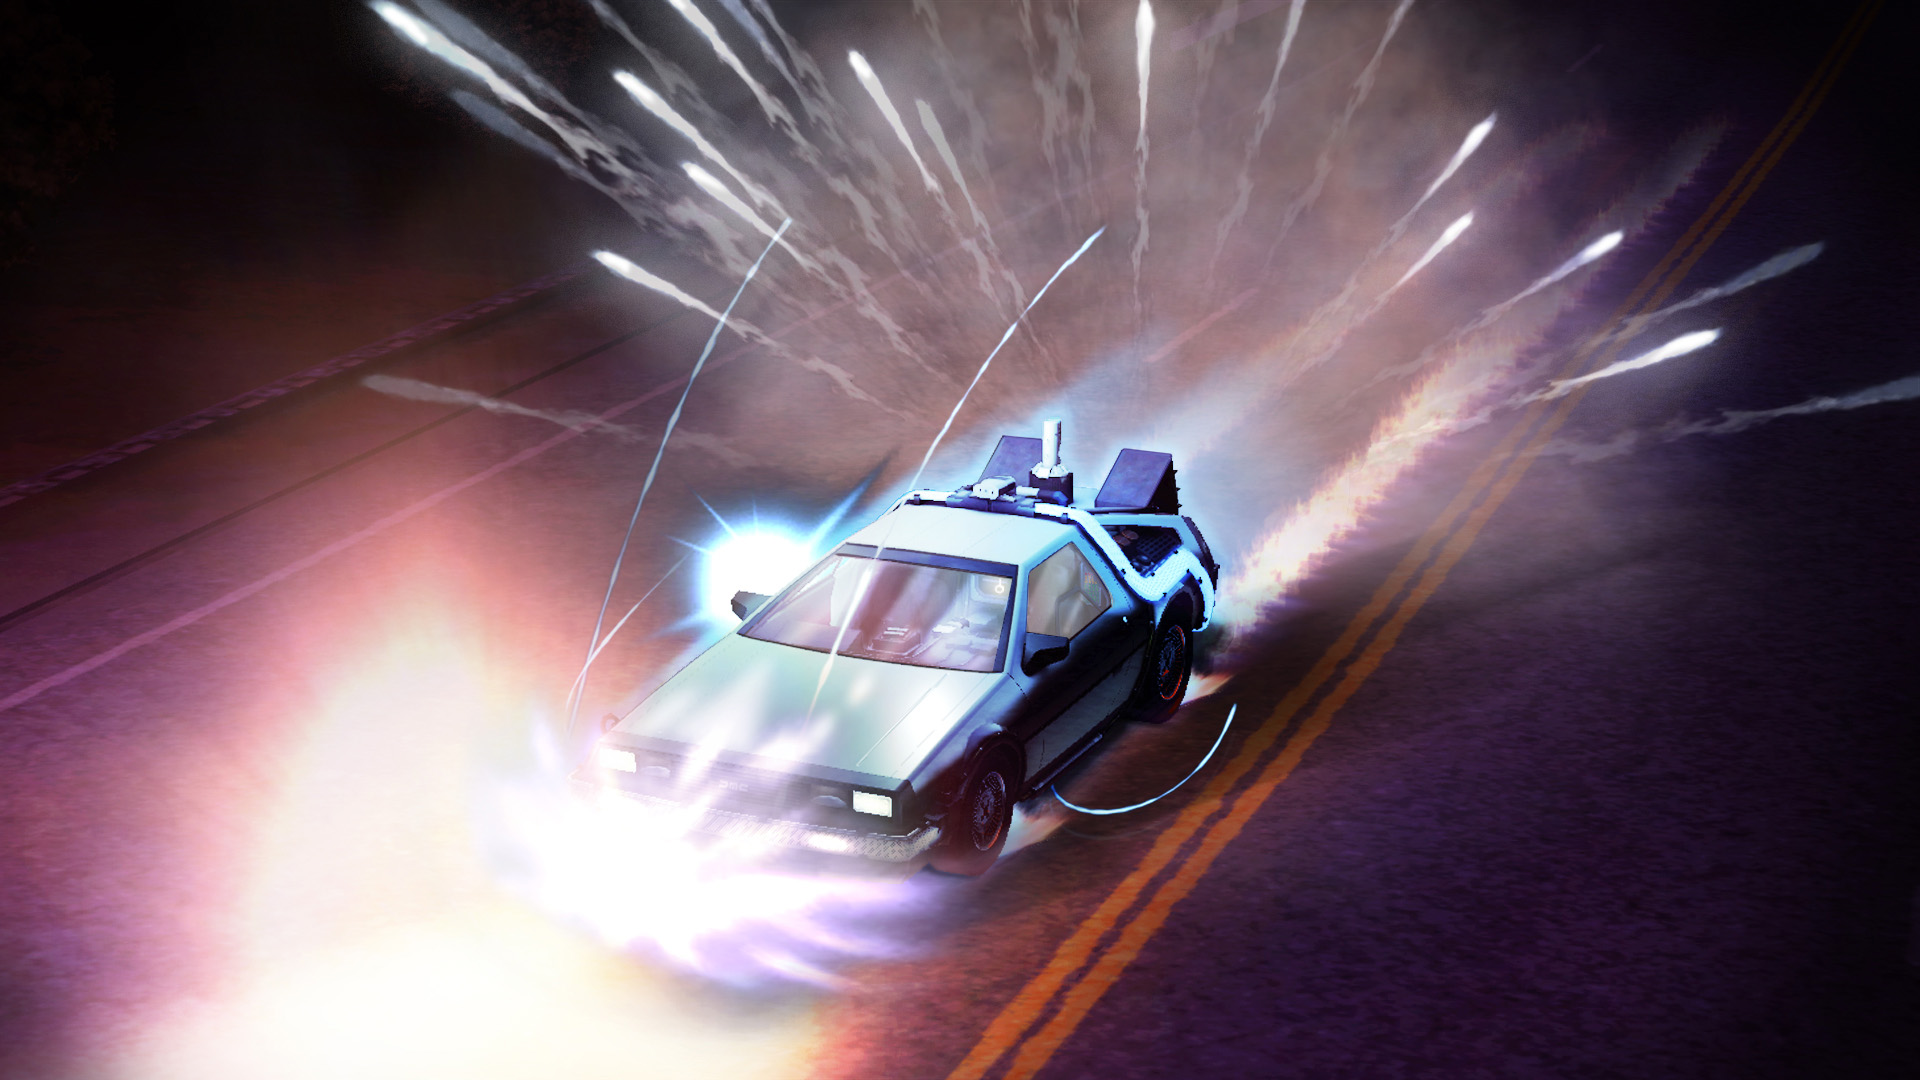 Free Download Back To The Future Hd Wallpapers For Desktop